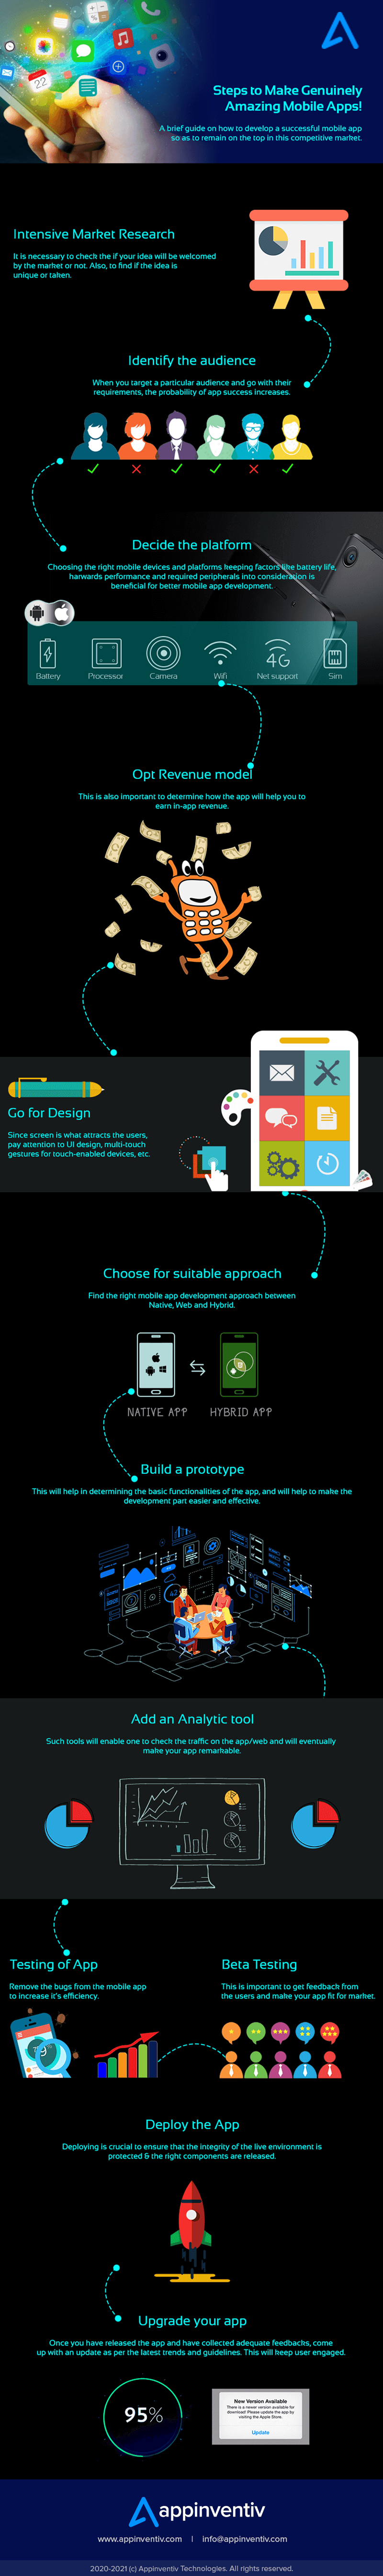 Steps of making genuinely amazing mobile apps